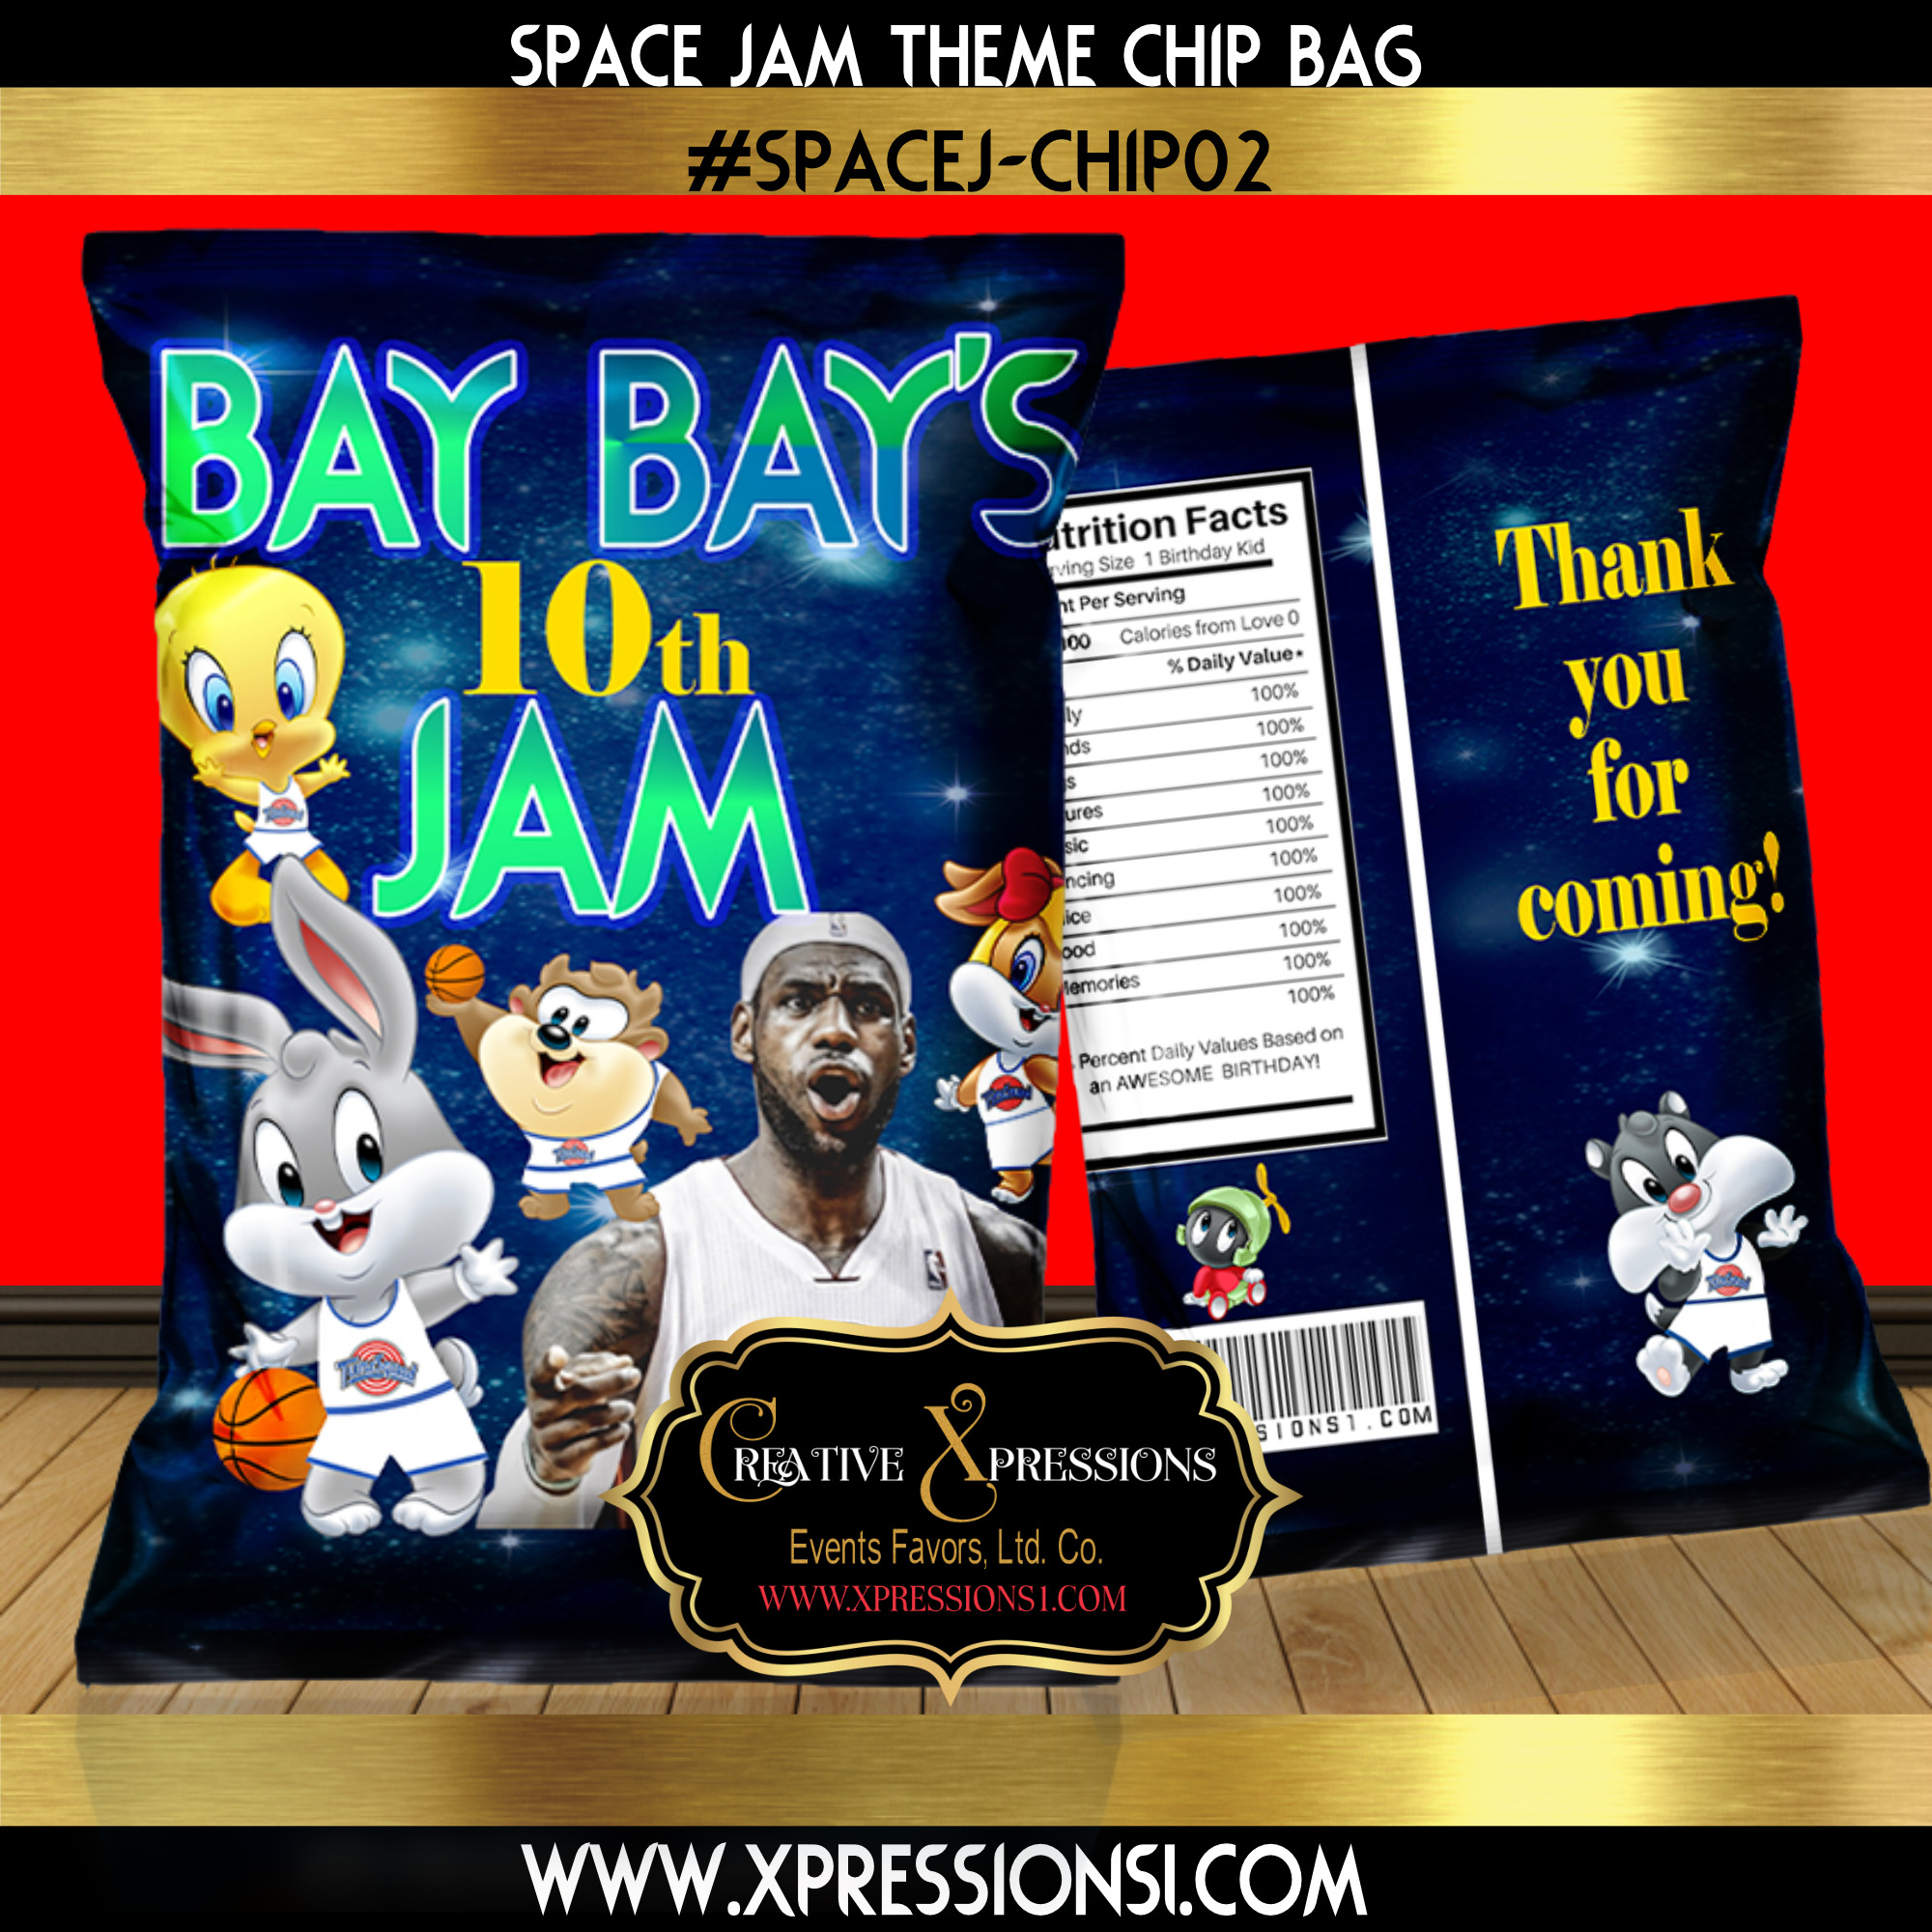 Space Jam Birthday Chip Bag